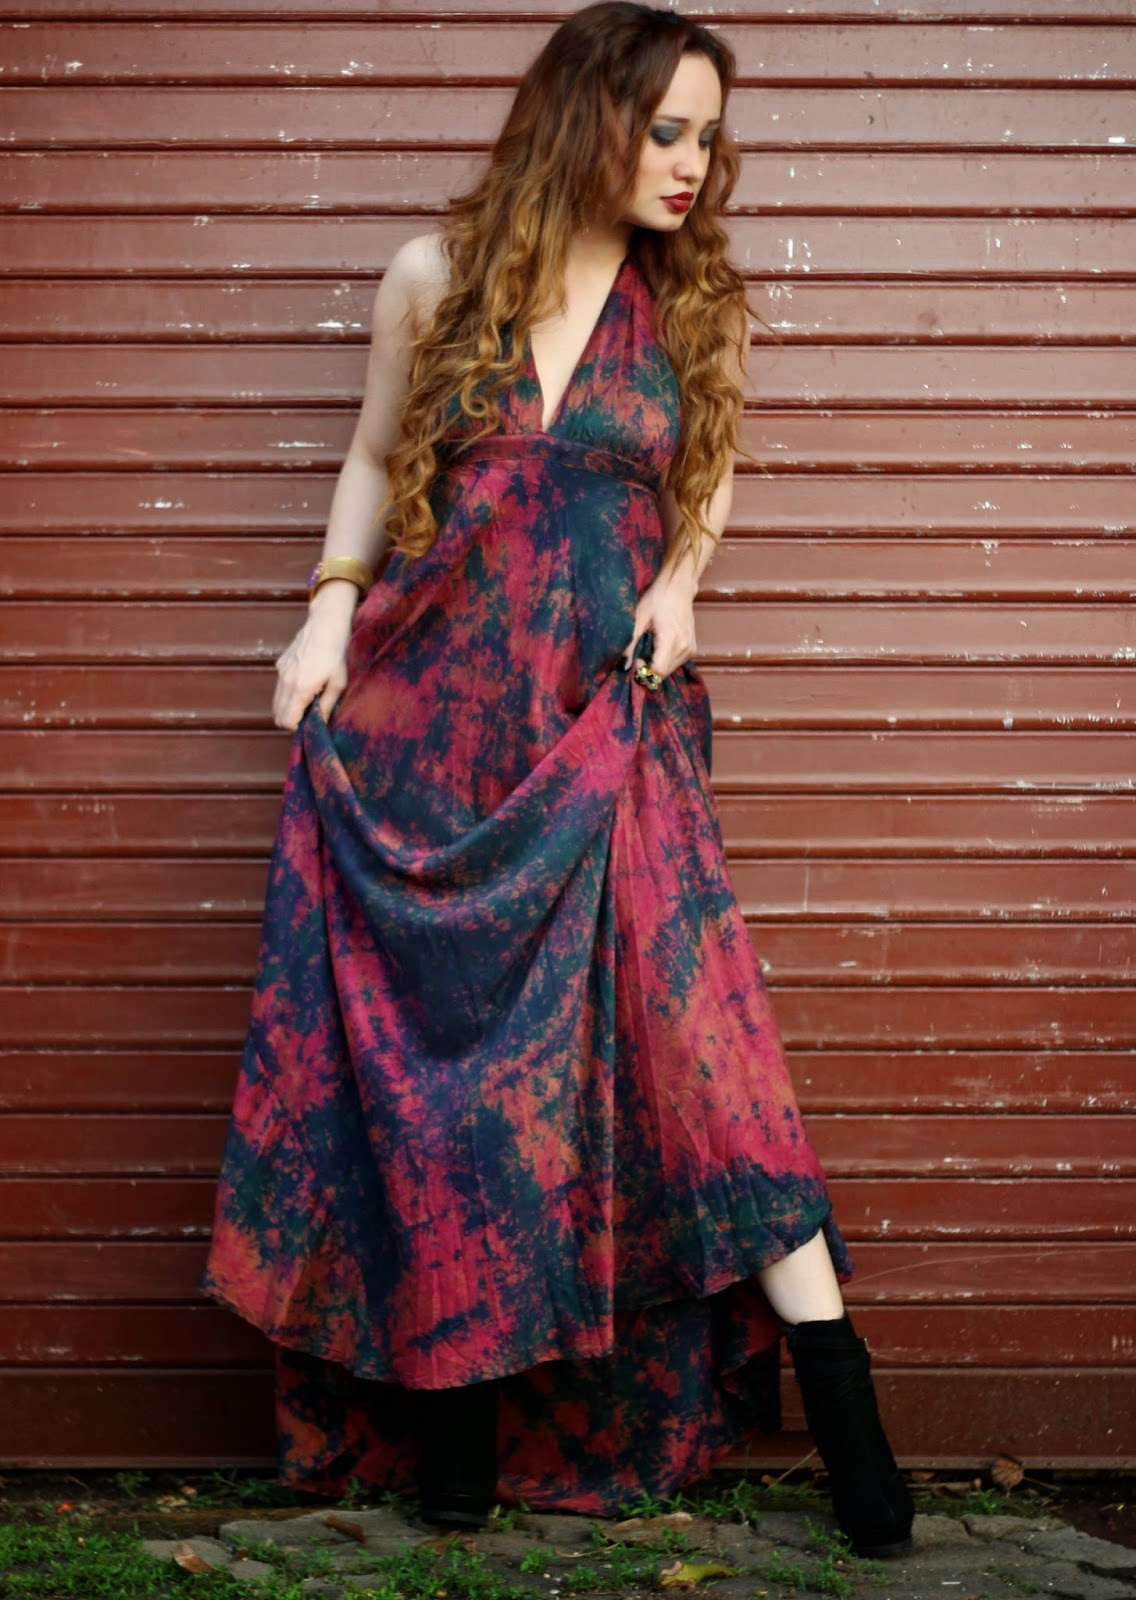 Batik Silk Maxi Dress worn with ankle boots, Bordeaux Lips